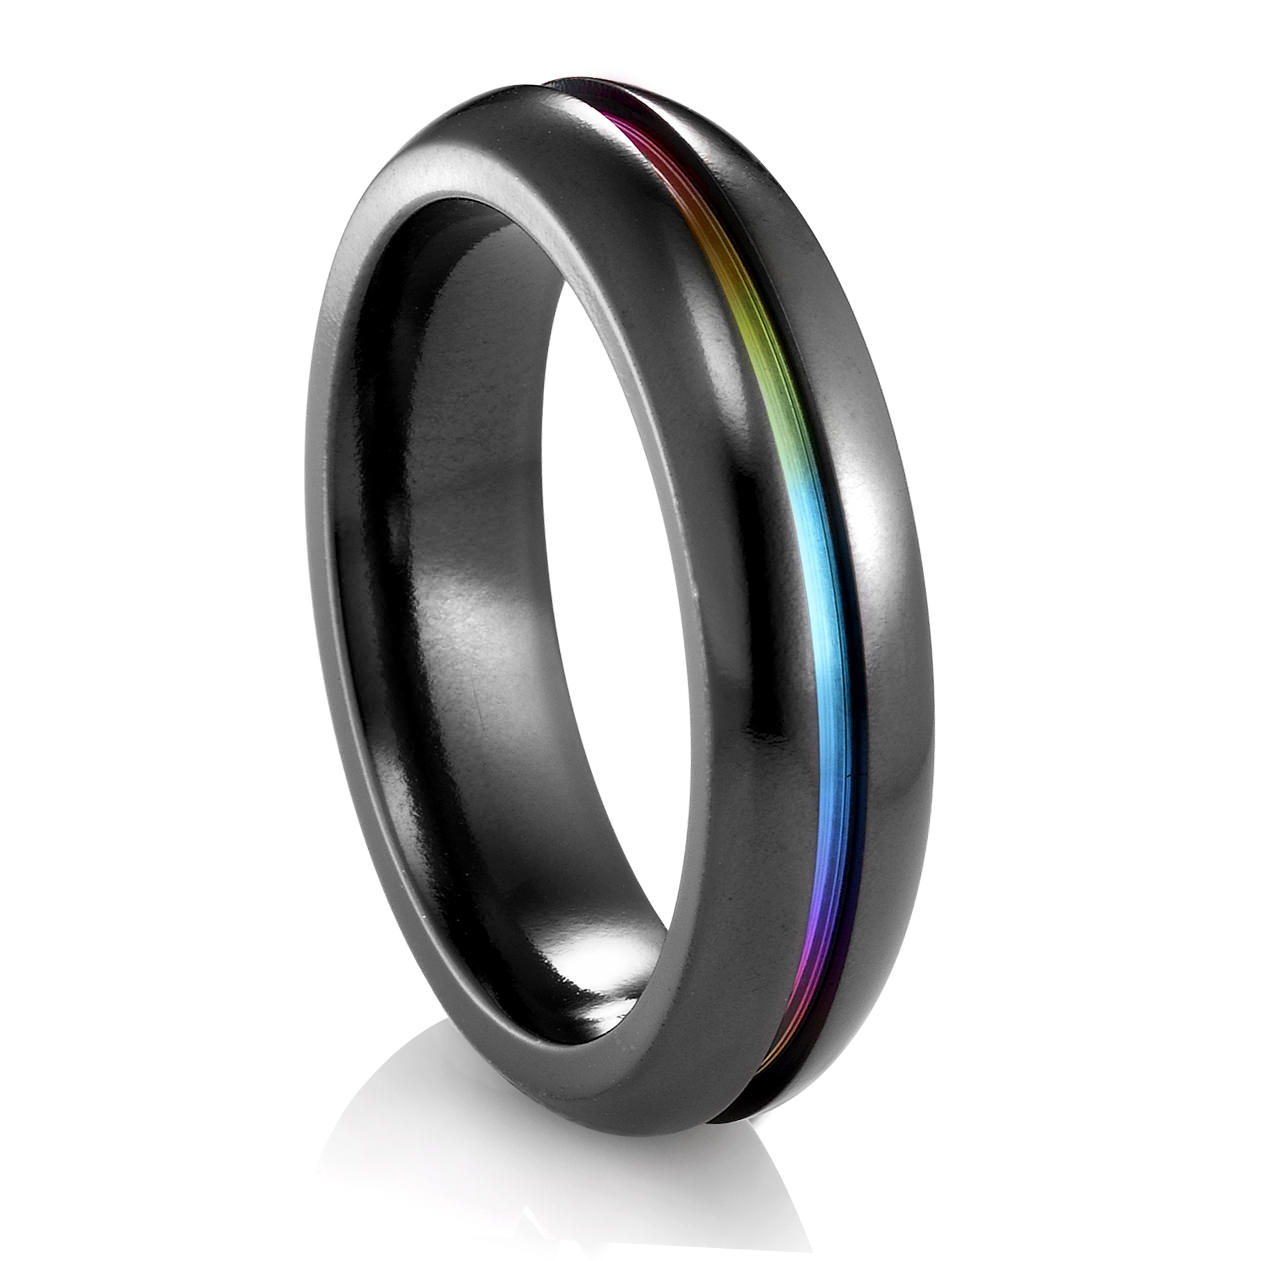 photo wedding ring rainbow dreamy new gem rings image main black lesbian engagement products pride